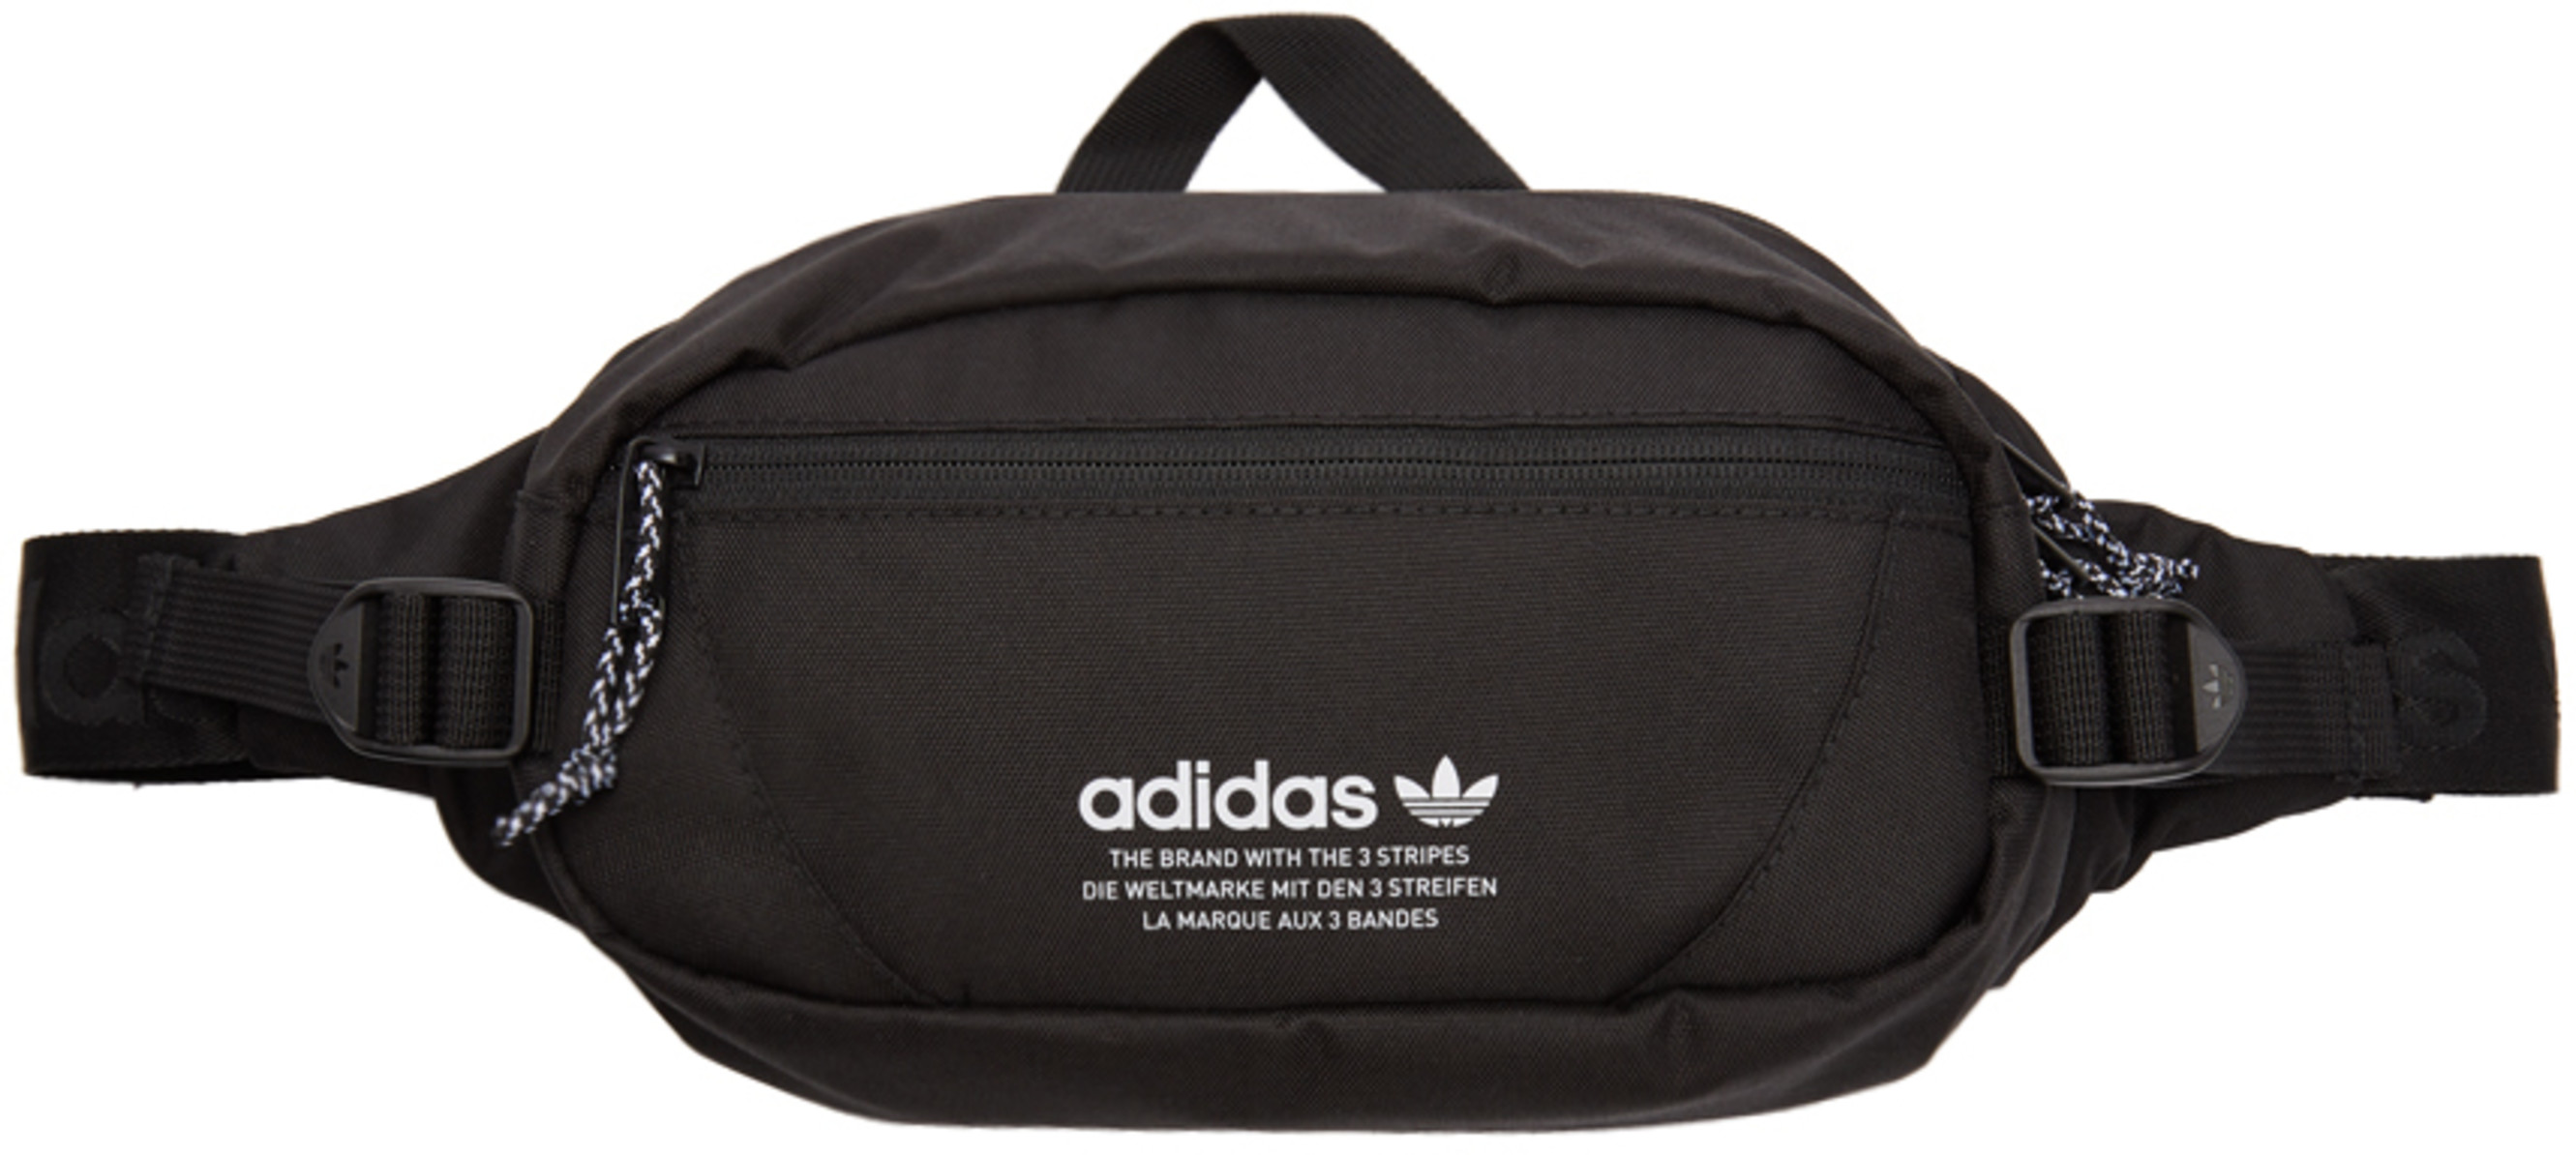 faa6dc84c0b0 Adidas Originals for Men SS19 Collection